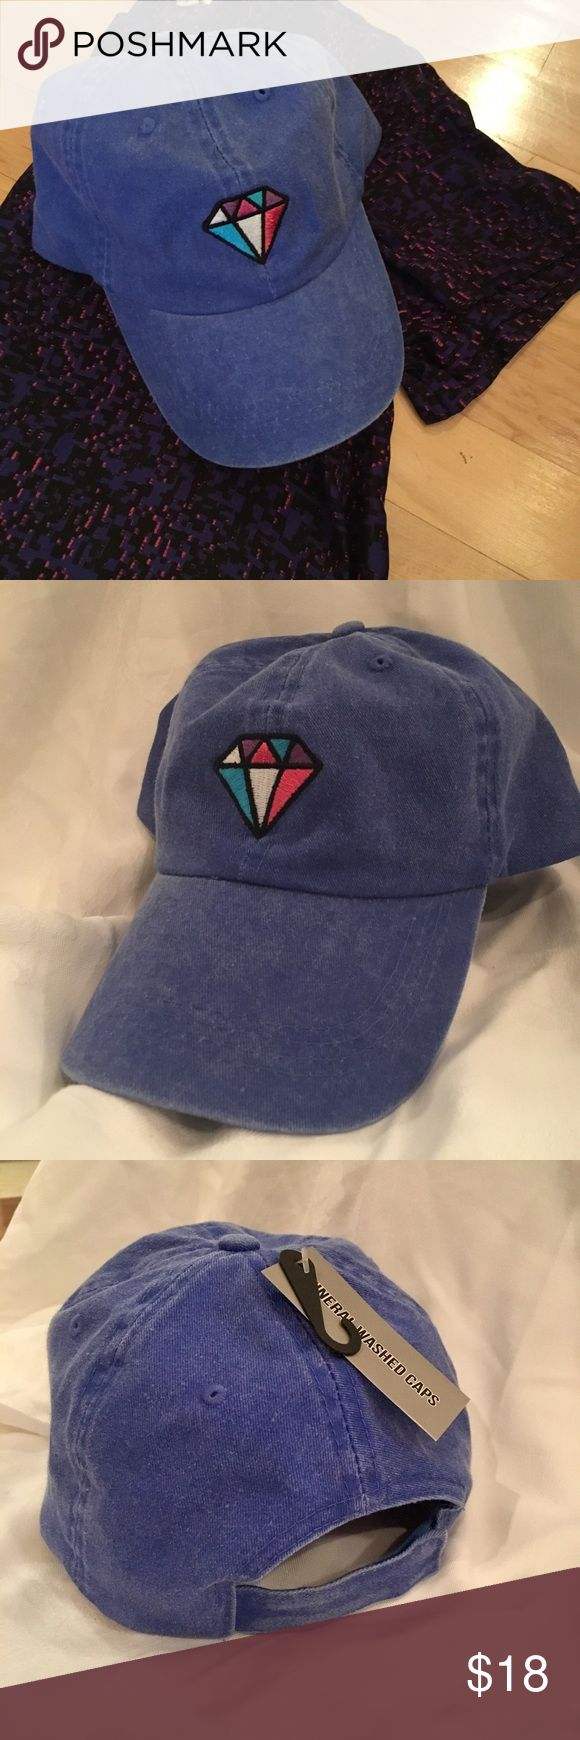 🆕Trendy Blue Washed Out Diamond Hat Brand New!! This hat is soooo cute! It's a blue color that almost looks like a washed out denim! The closure on the back is velcro so it's super easy to adjust. It has a colorful diamond on the front. I can totally see someone rocking this with a choker, tee, and black ripped skinny jeans! Feel free to ask any questions or make an offer! 😊 Accessories Hats